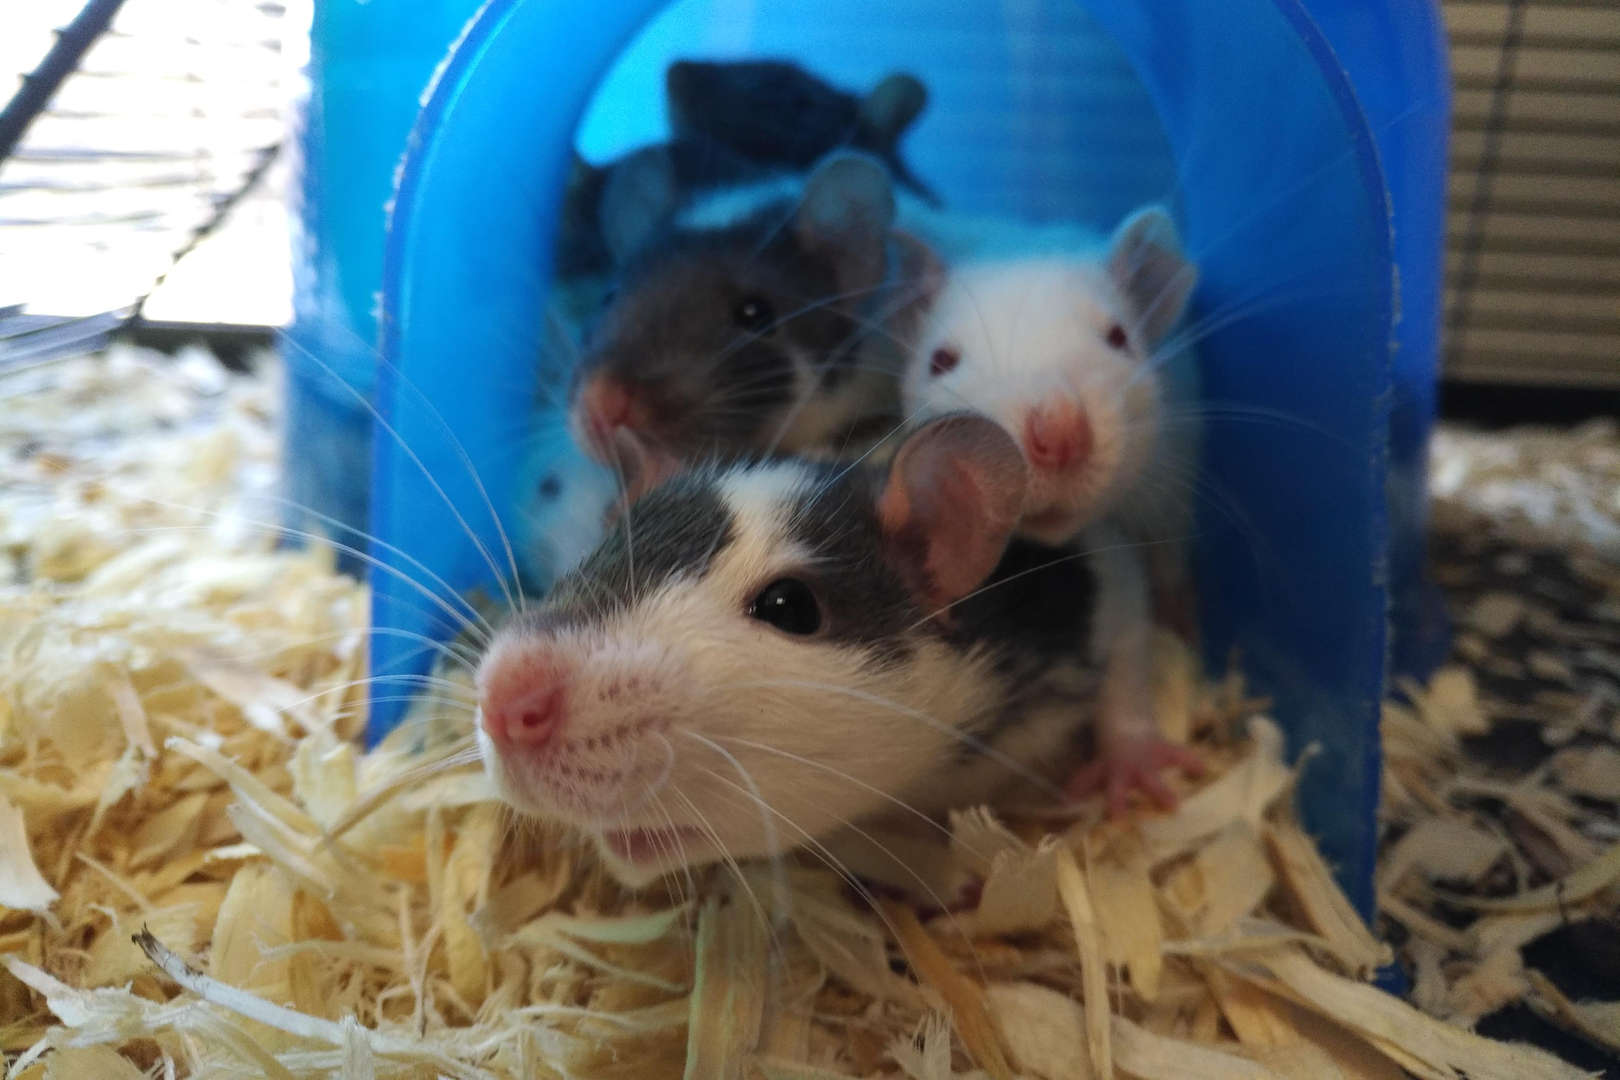 Rats group together in a blue dome